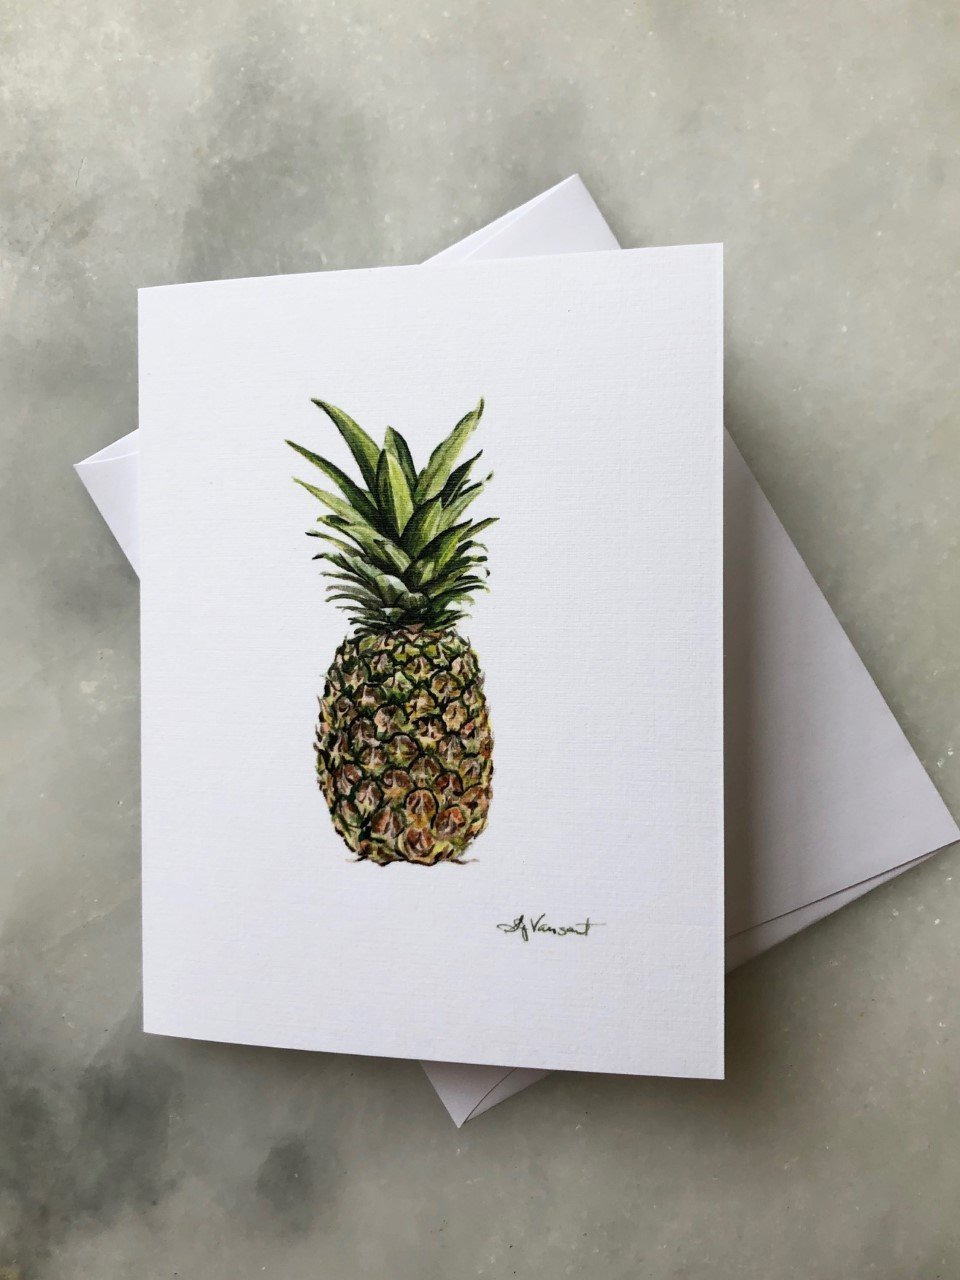 PINEAPPLE GREETING CARD - Molly's! A Chic and Unique Boutique